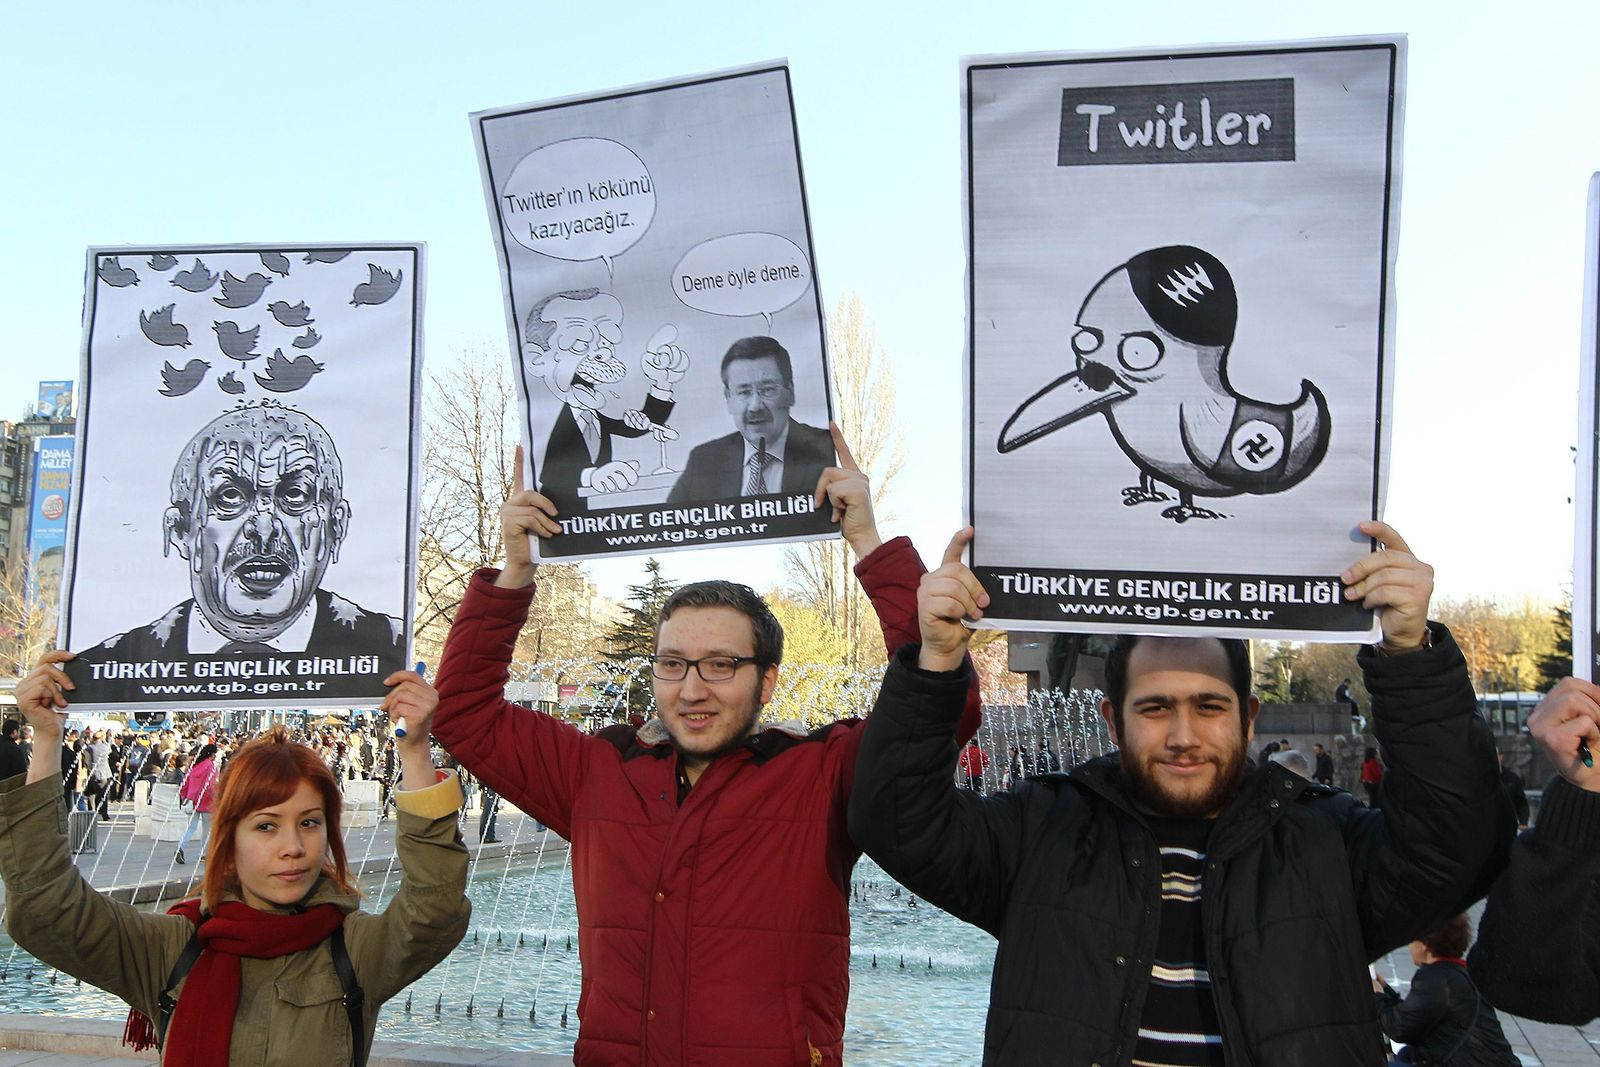 TURKEY-POLITICS-CORRUPTION-INTERNET-TWITTER